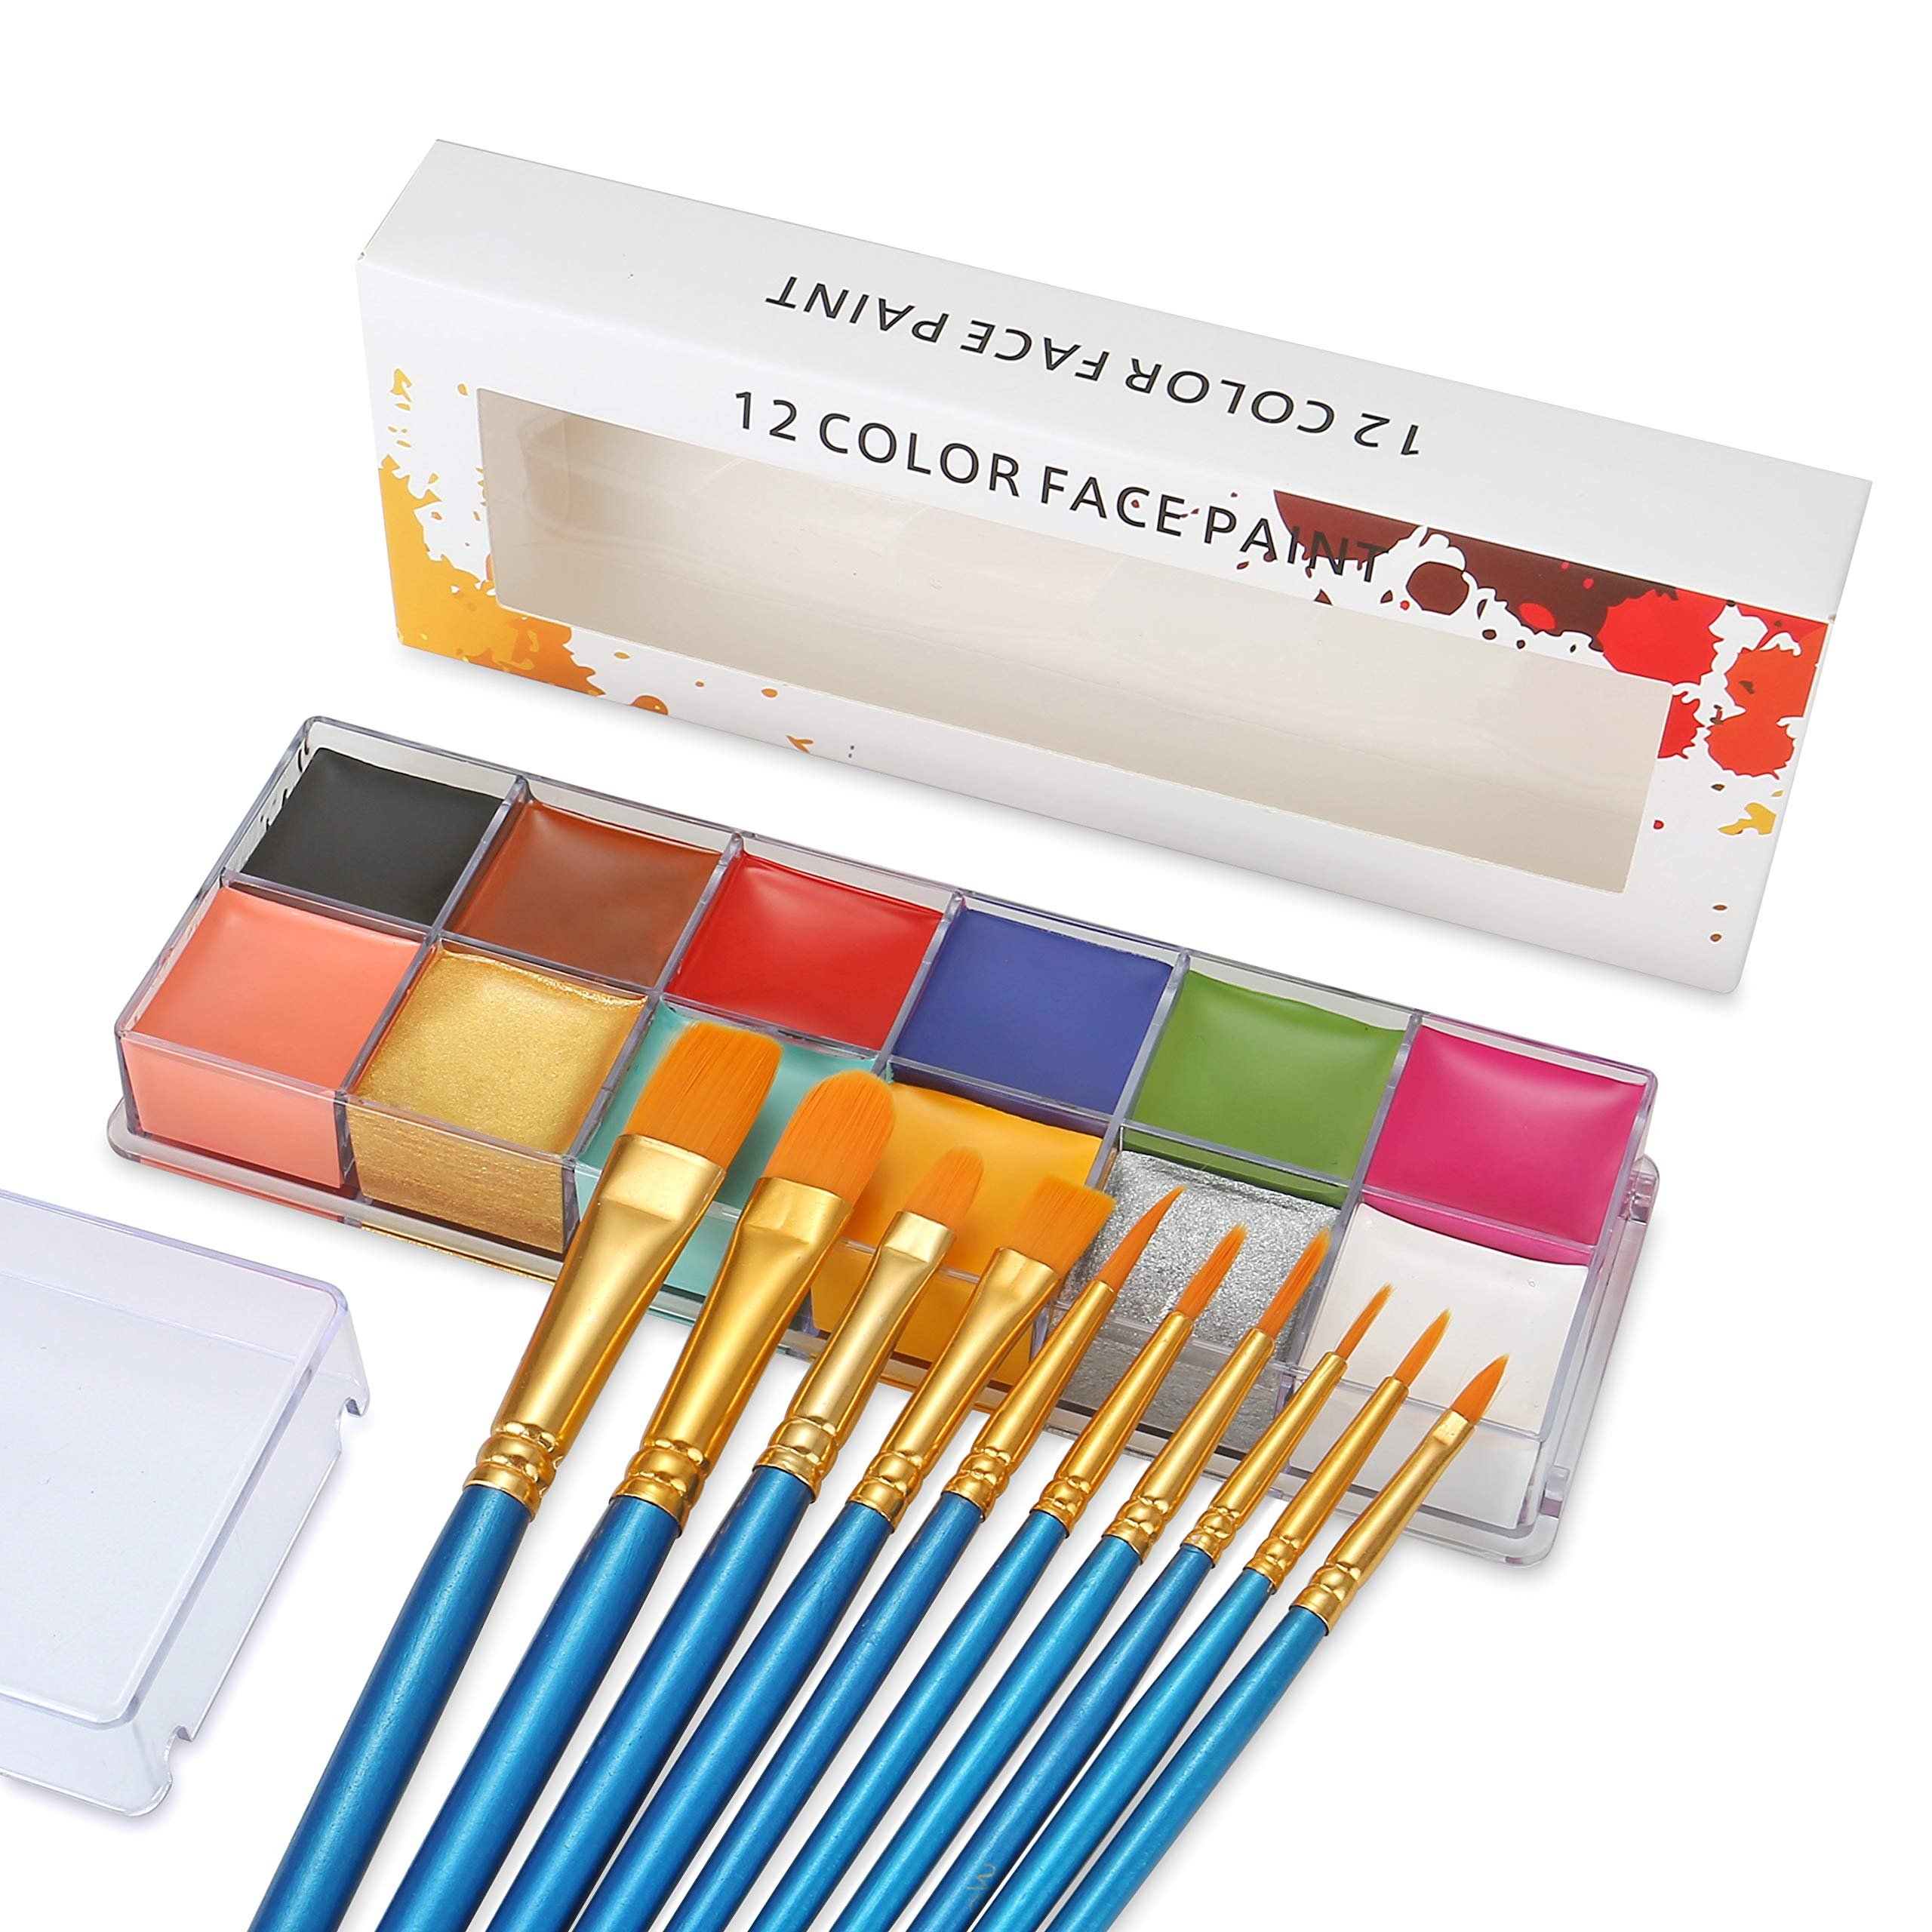 Professional Face Body Paint Oil 12 Colors Painting Art Party Halloween Fancy Make Up with Brushes by CCbeauty